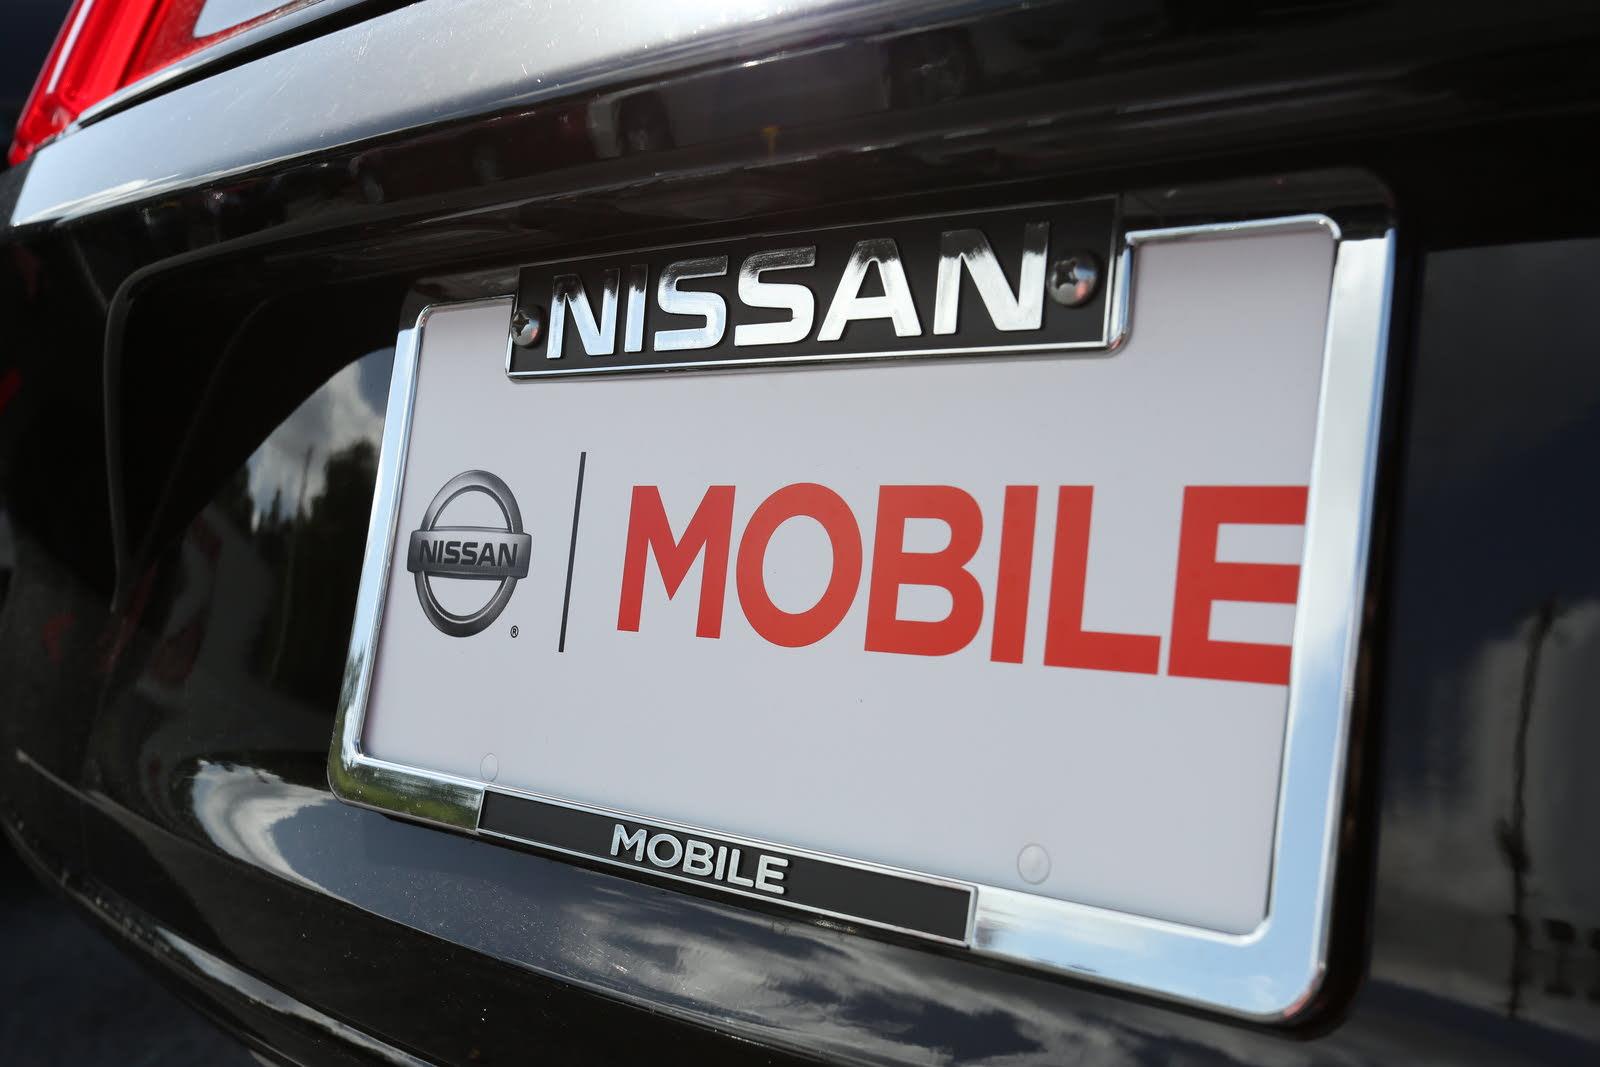 Nissan Of Mobile >> Nissan Of Mobile Mobile Al Read Consumer Reviews Browse